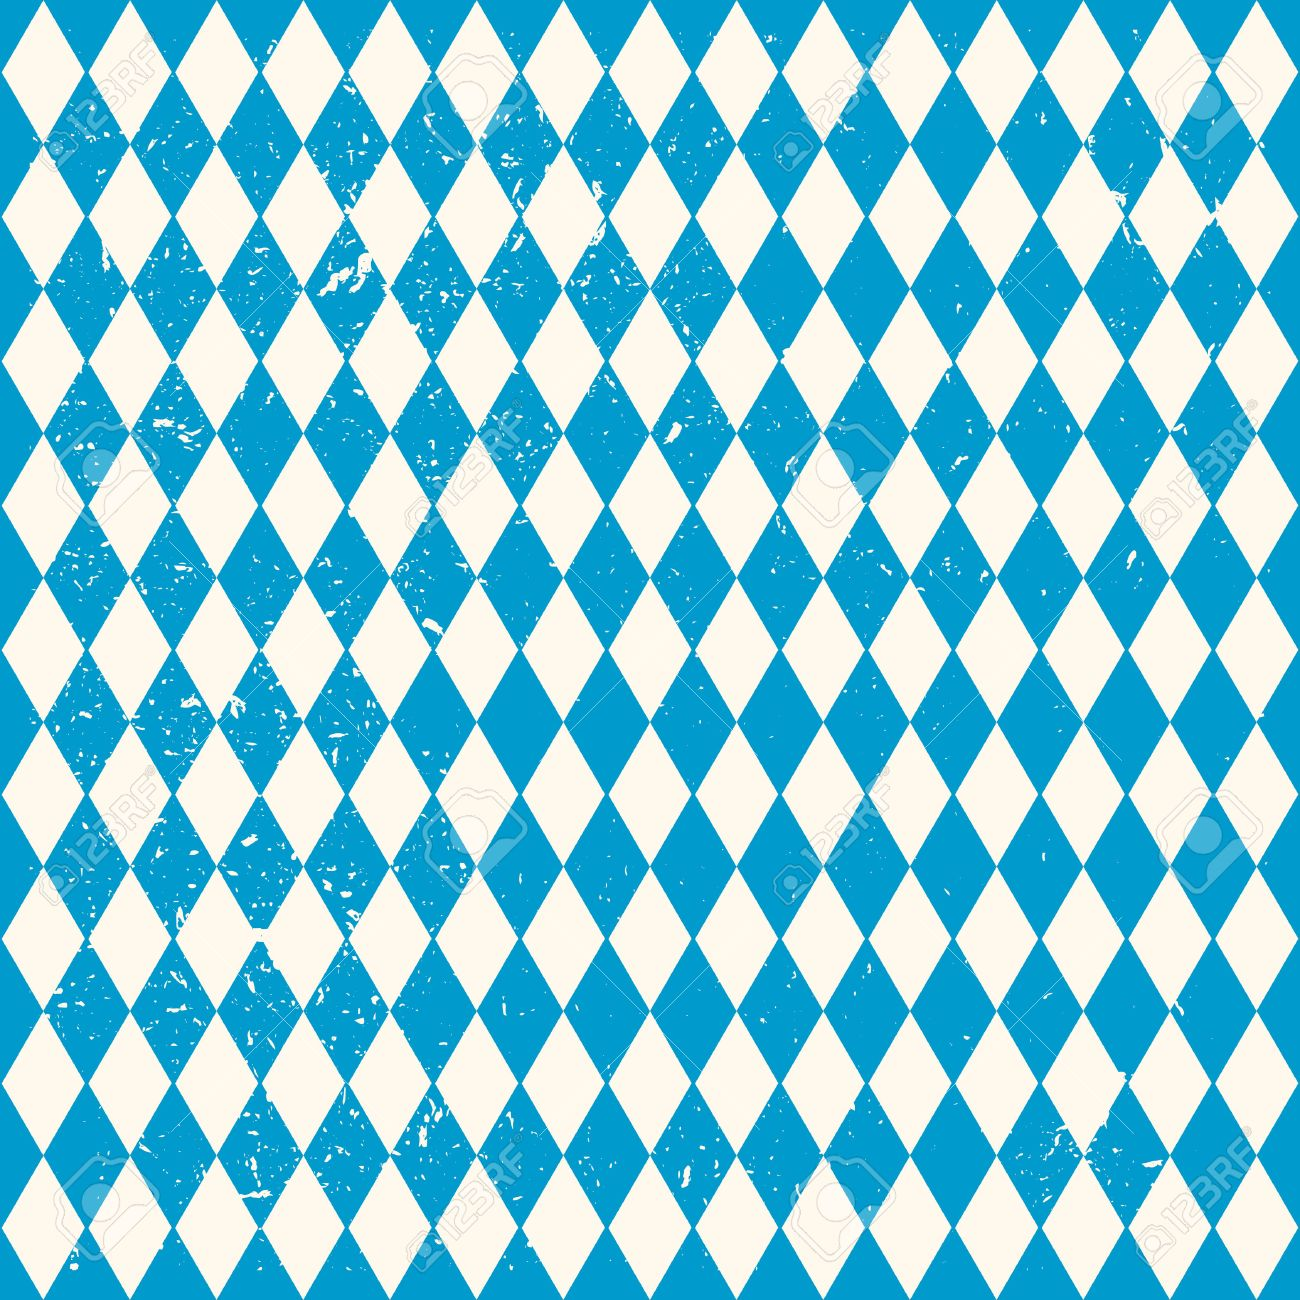 Oktoberfest Pattern With Blue And White Rhombus